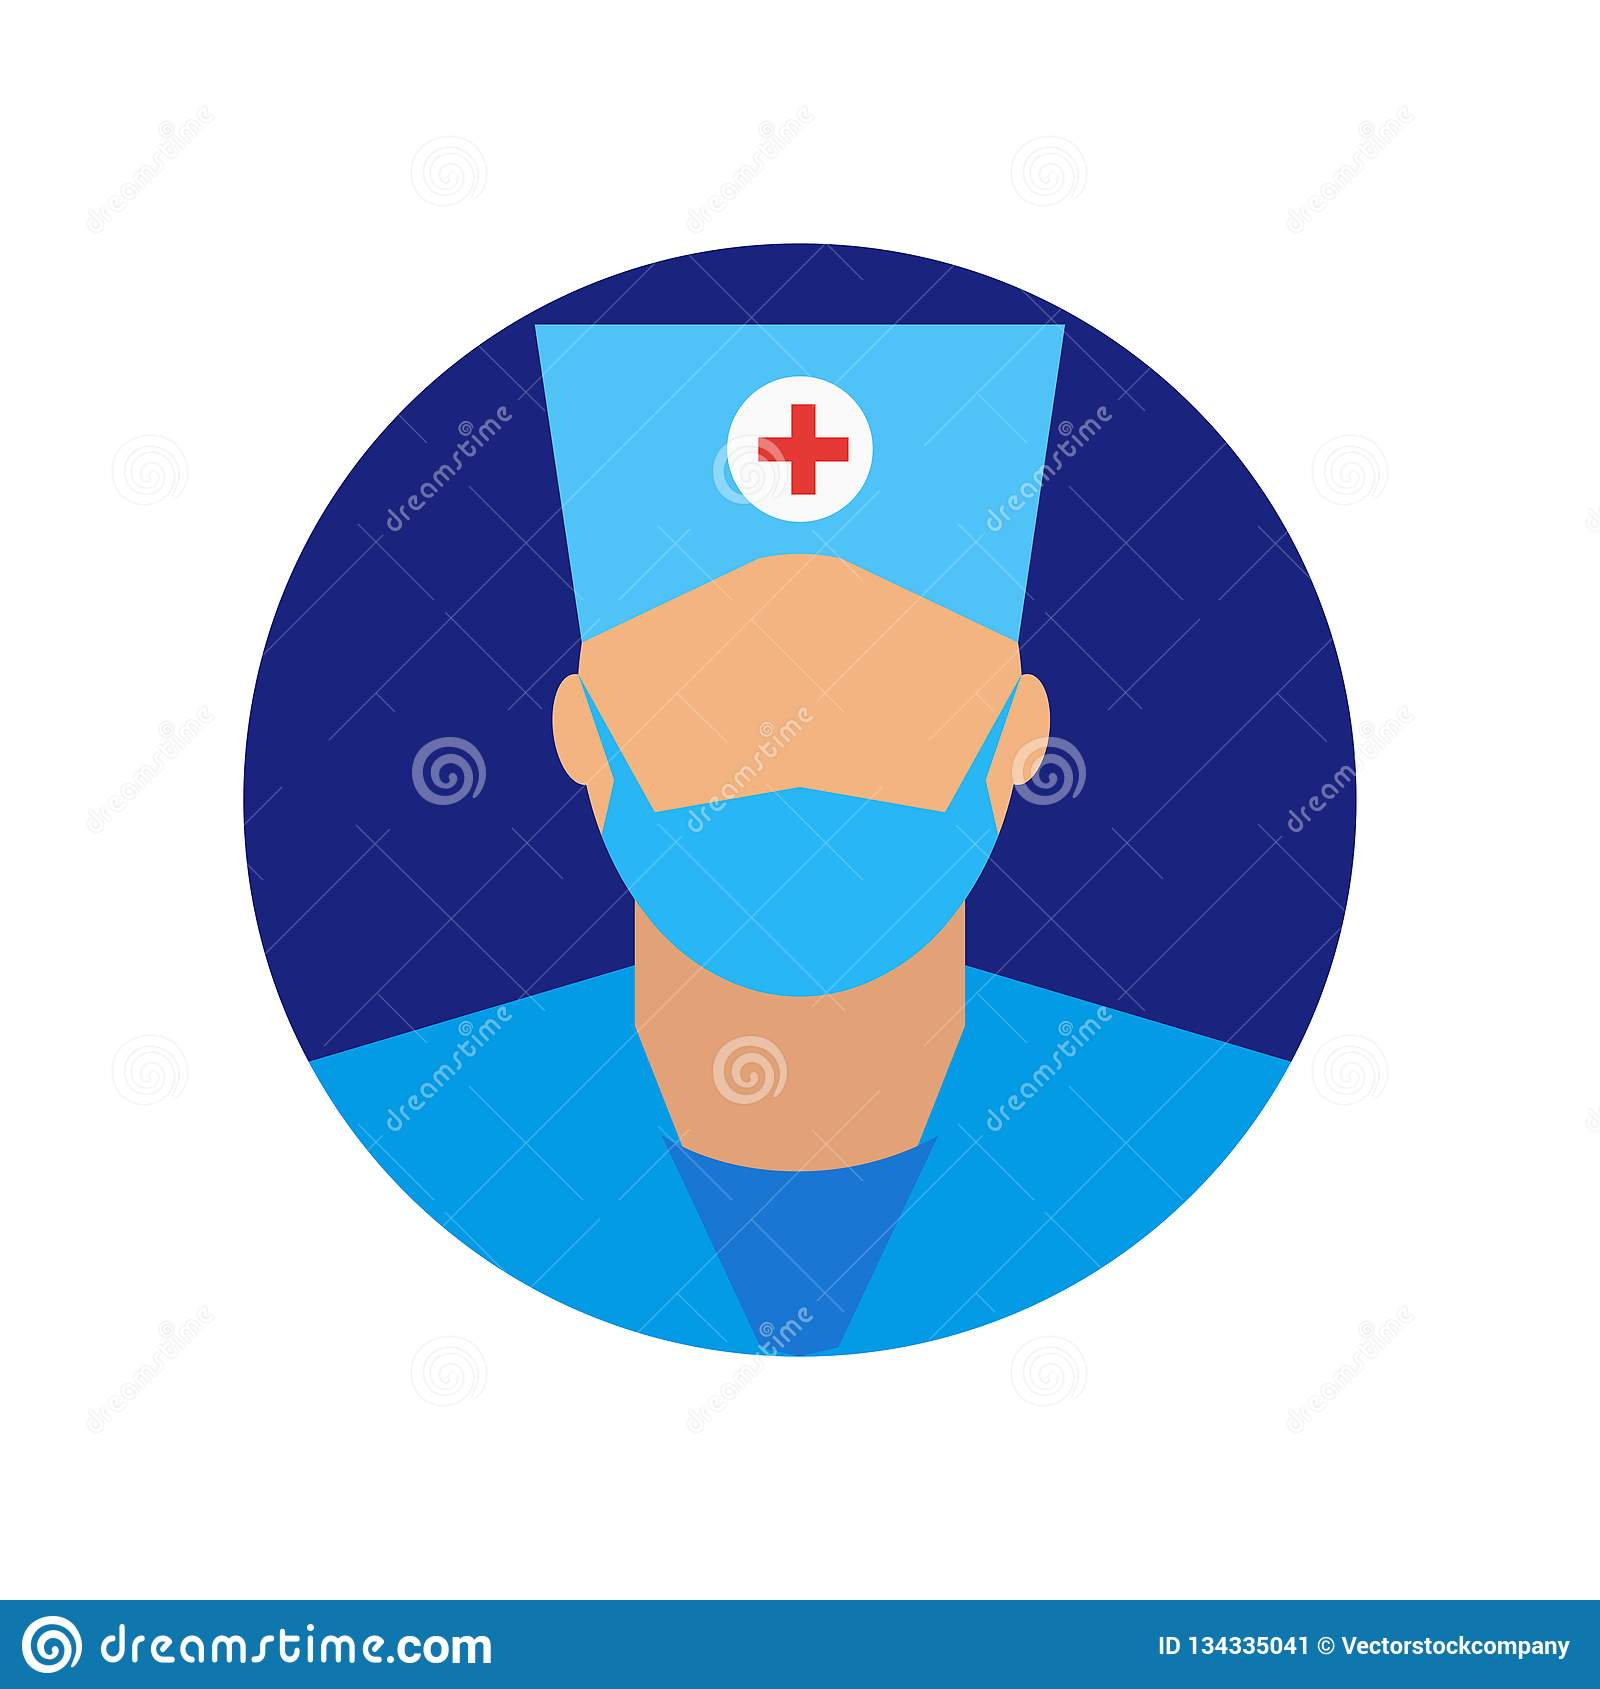 Surgeon Icon Vector Sign And Symbol Isolated On White Background Surgeon Logo Concept Stock Vector Illustration Of Symbol Graphic 134335041